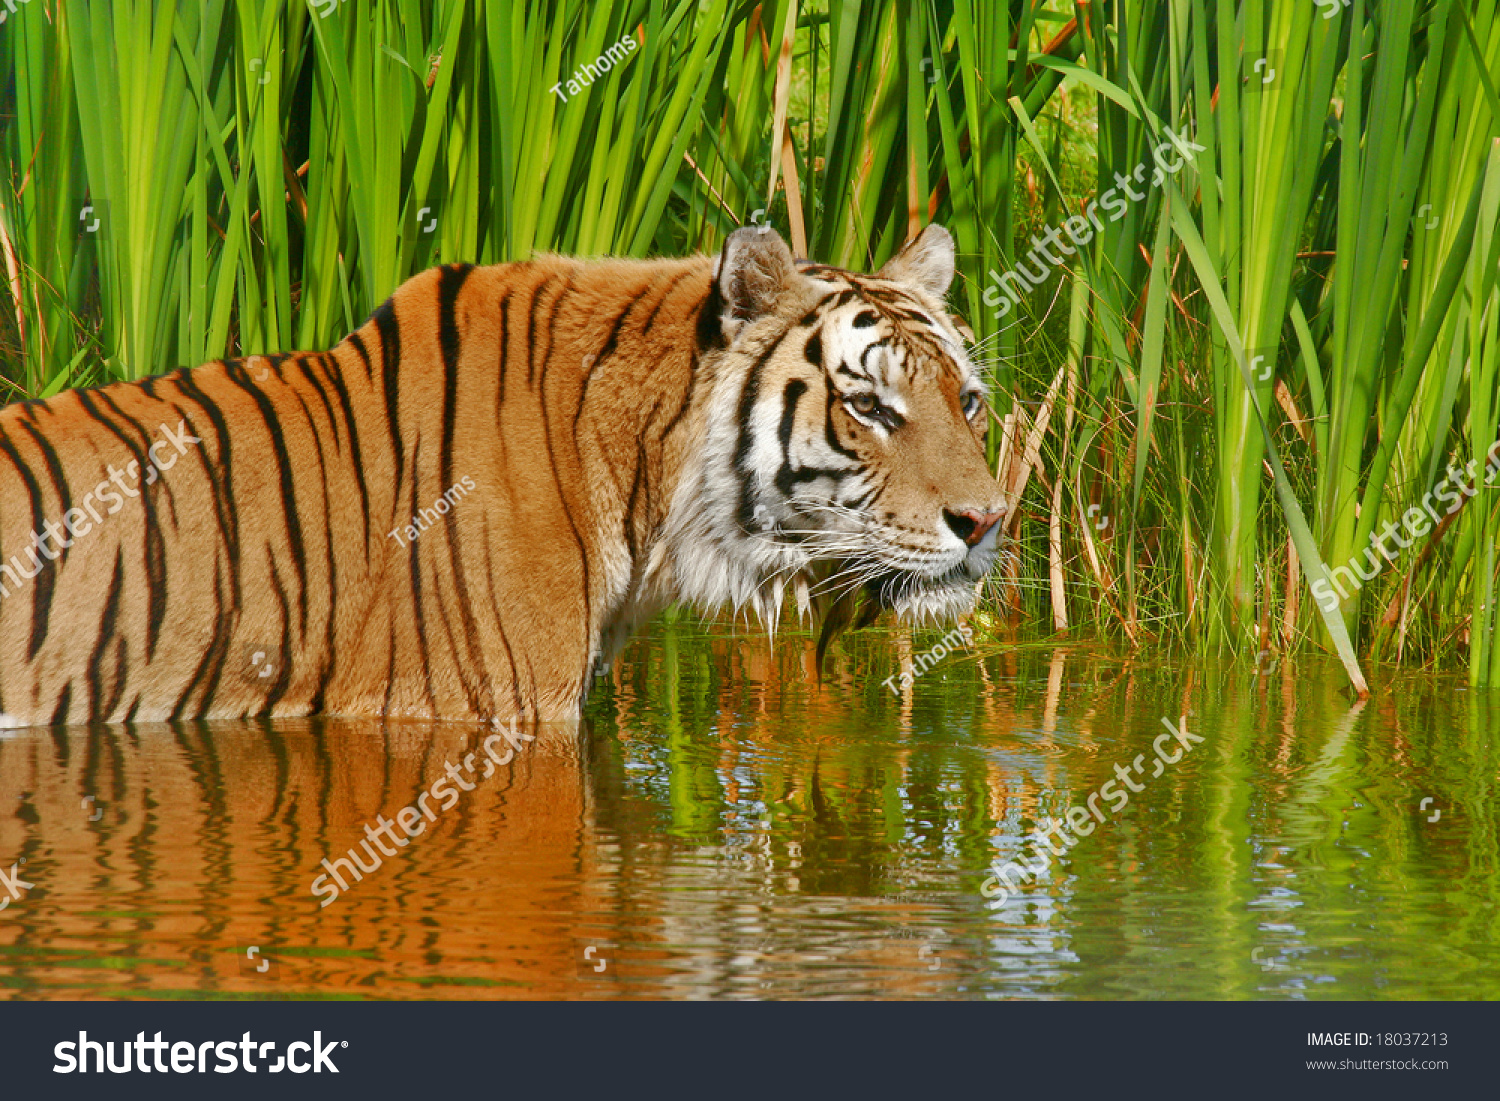 stock-photo-siberian-tiger-cooling-down-